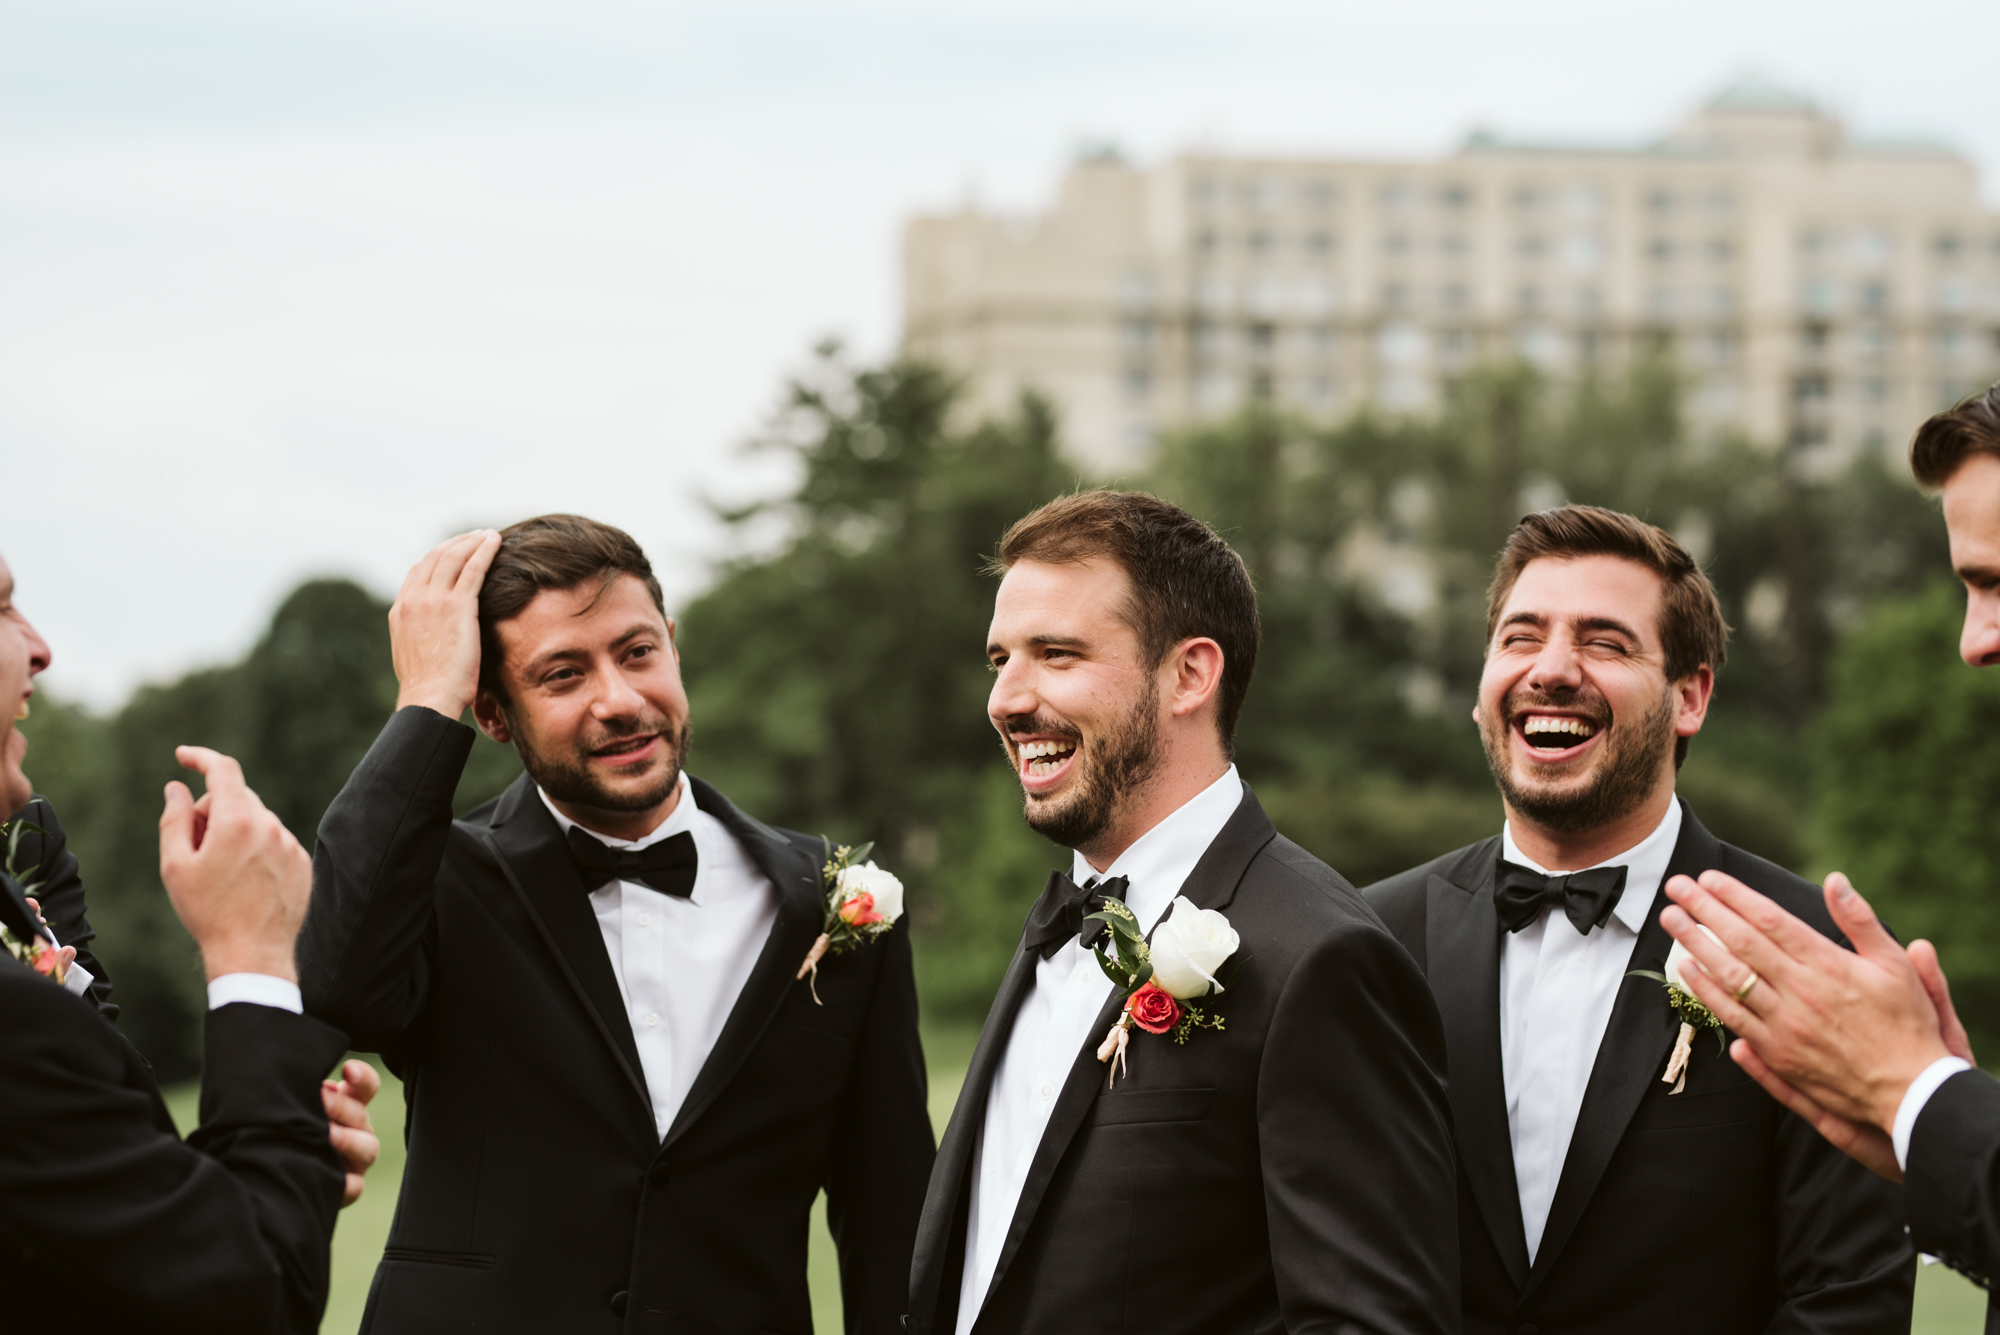 Elegant, Columbia Country Club, Chevy Chase Maryland, Baltimore Wedding Photographer, Classic, Traditional, Jewish Wedding, Groomsmen Laughing Before Ceremony, Candid Photo, Meg Owen Floral Designs